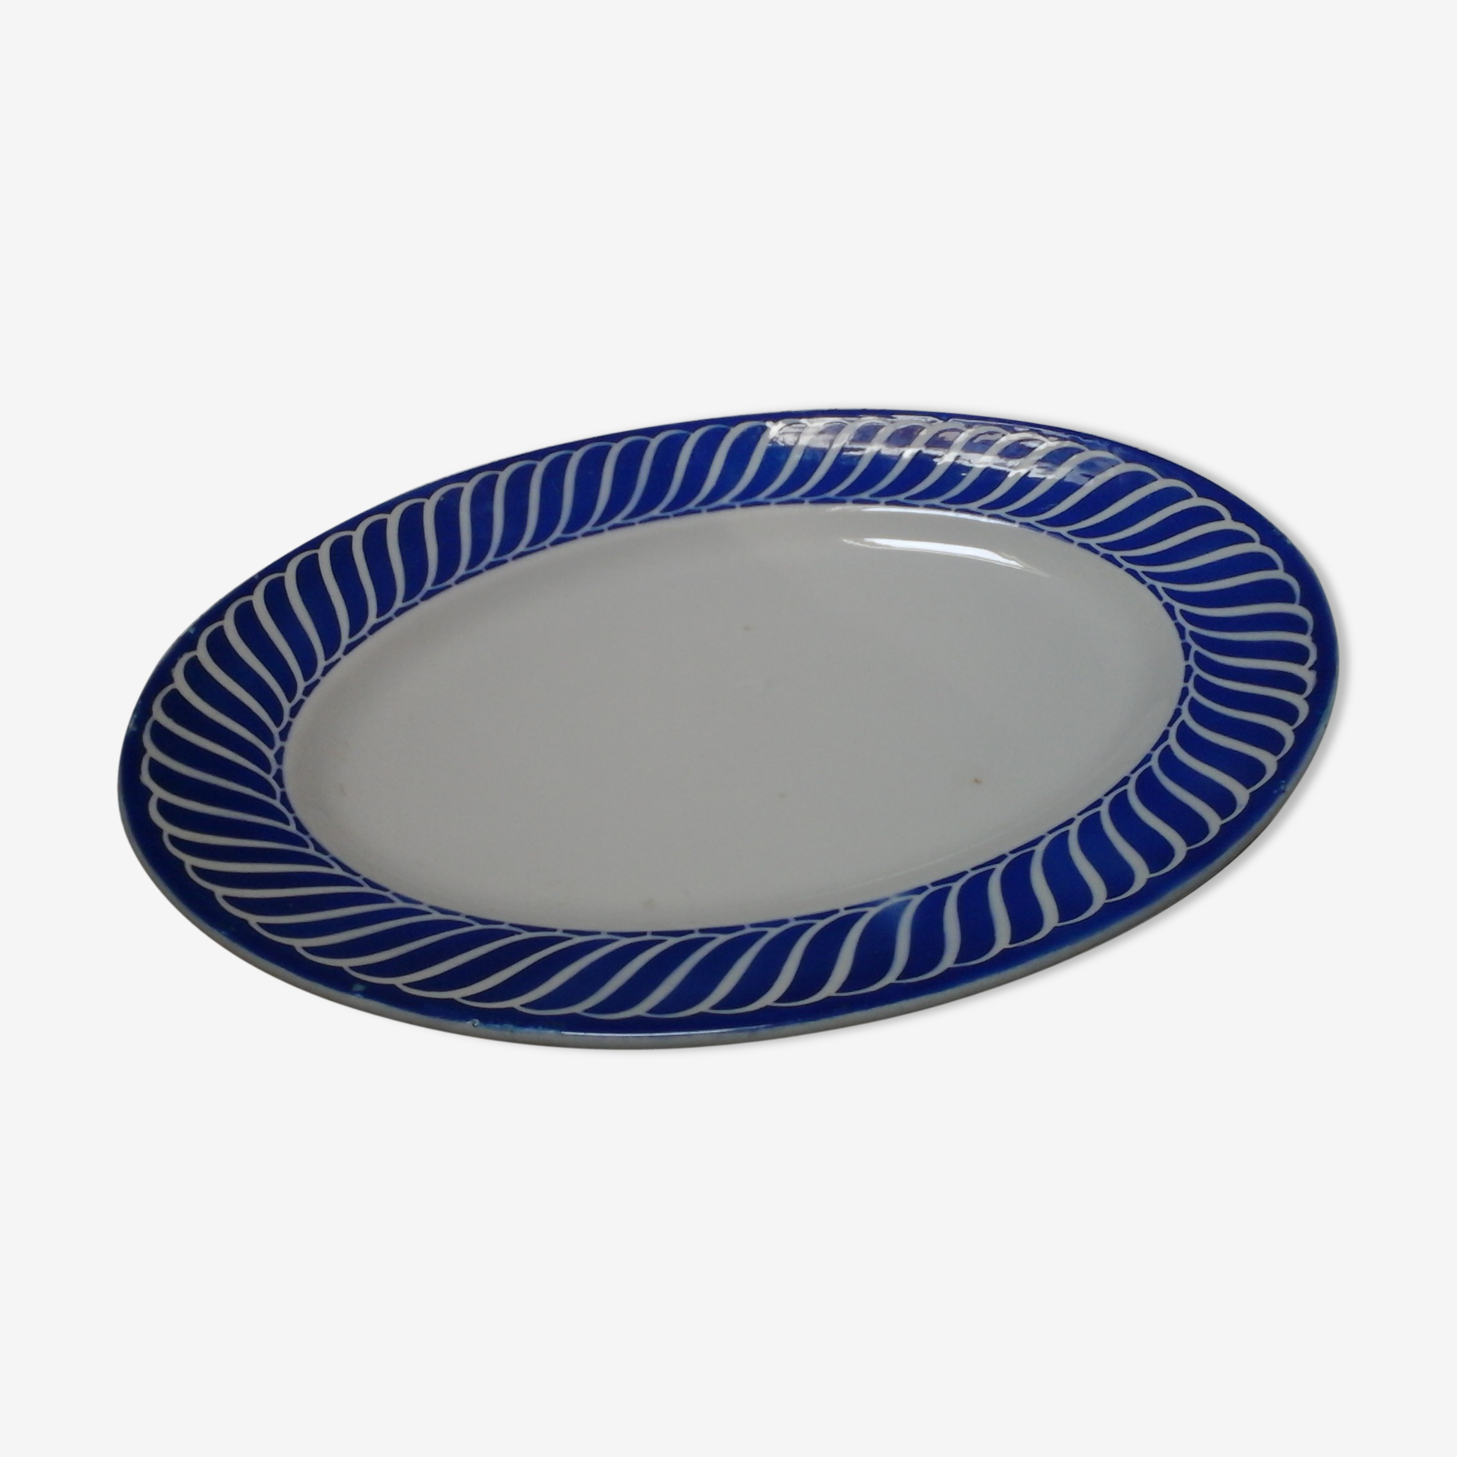 Oval plate from Jacquot & Digoin Sarreguemines